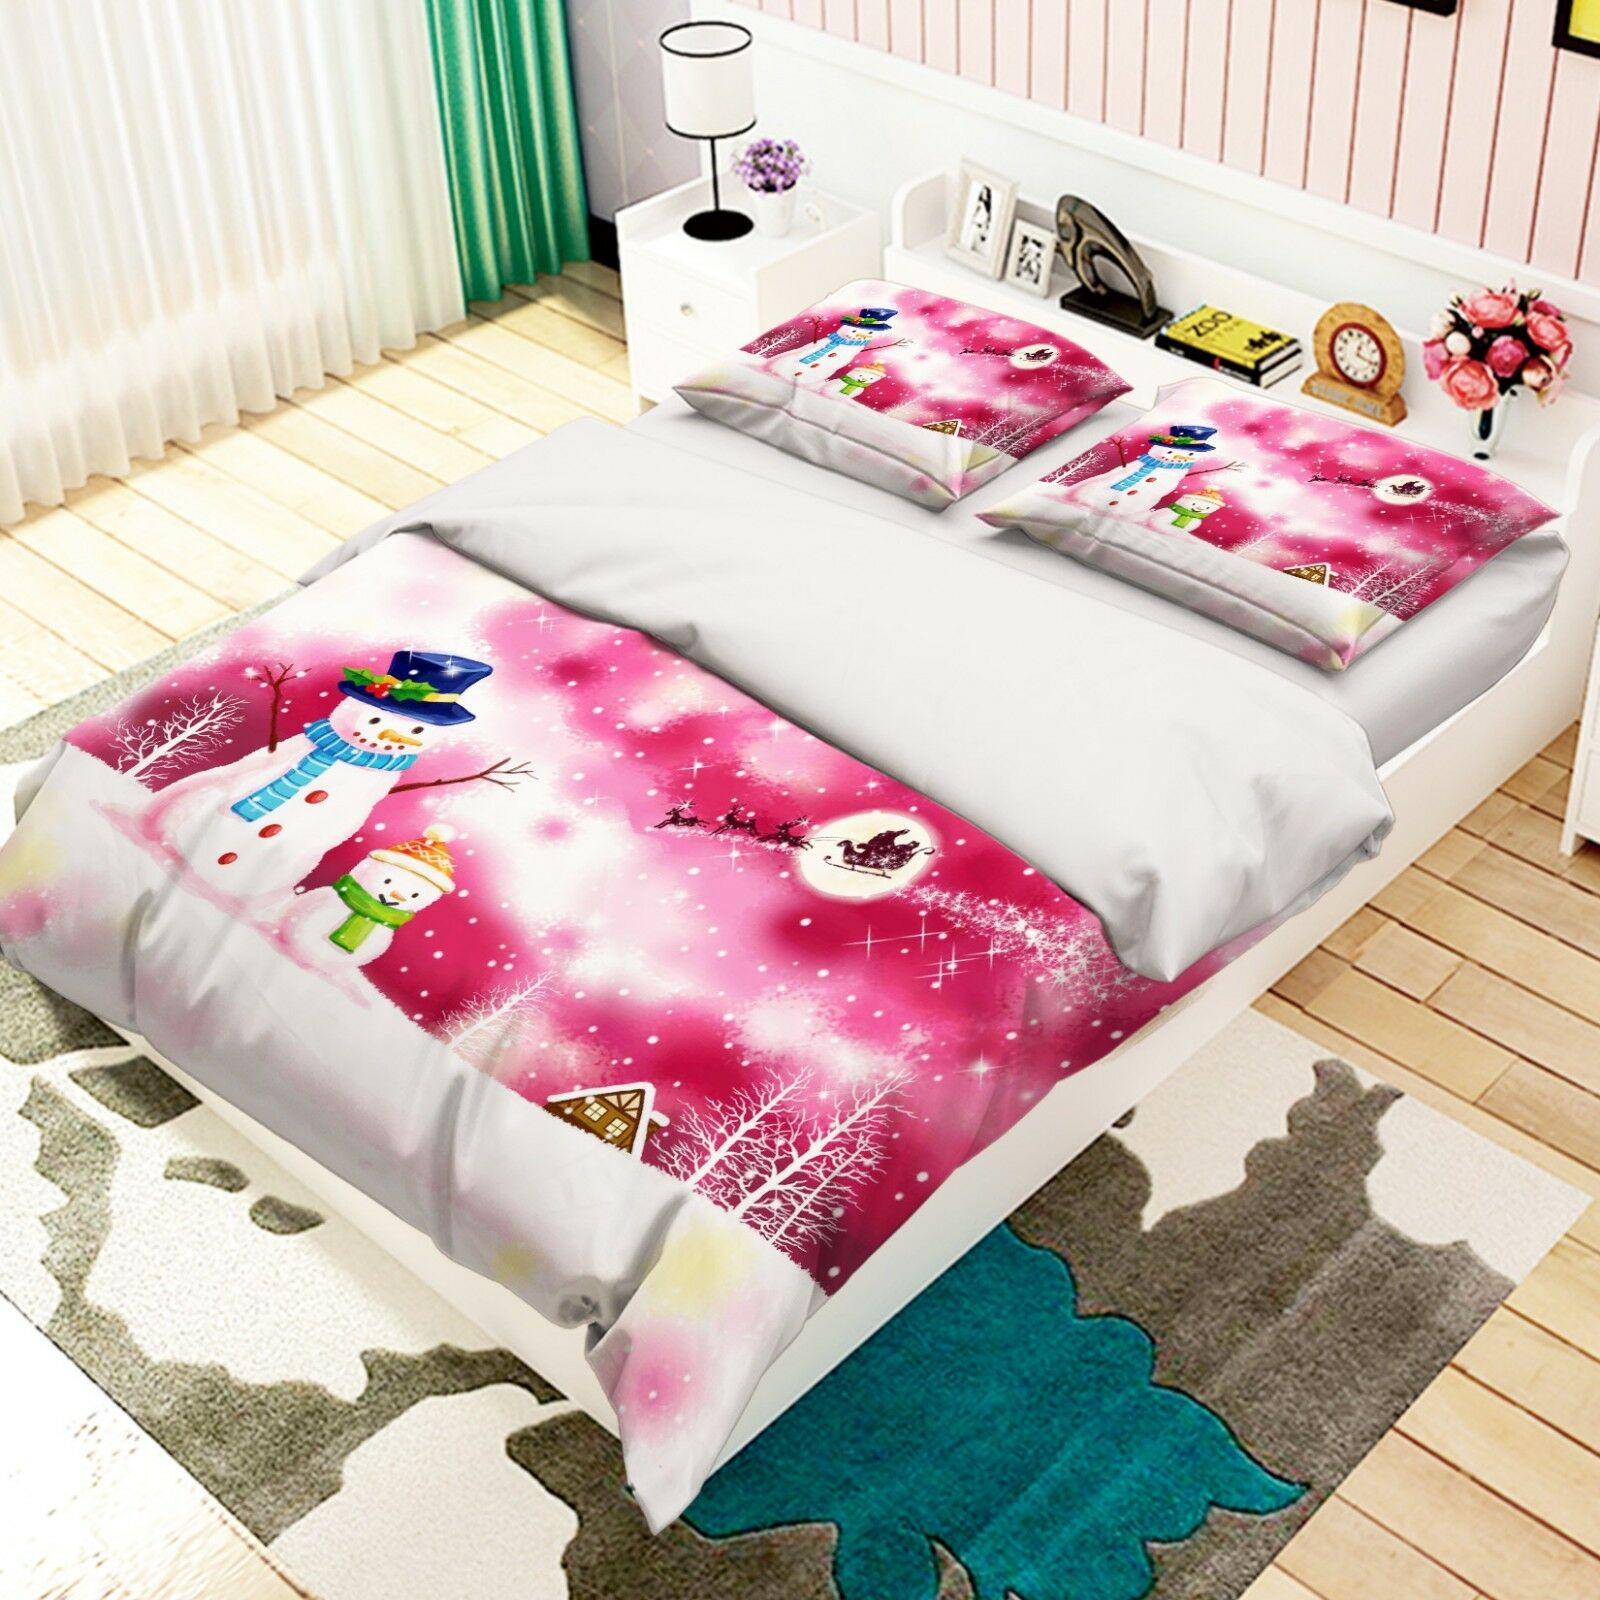 3D Snowhomme Tree 575 Bed PilFaiblecases Quilt Duvet Cover Set Single Queen AU voiturely